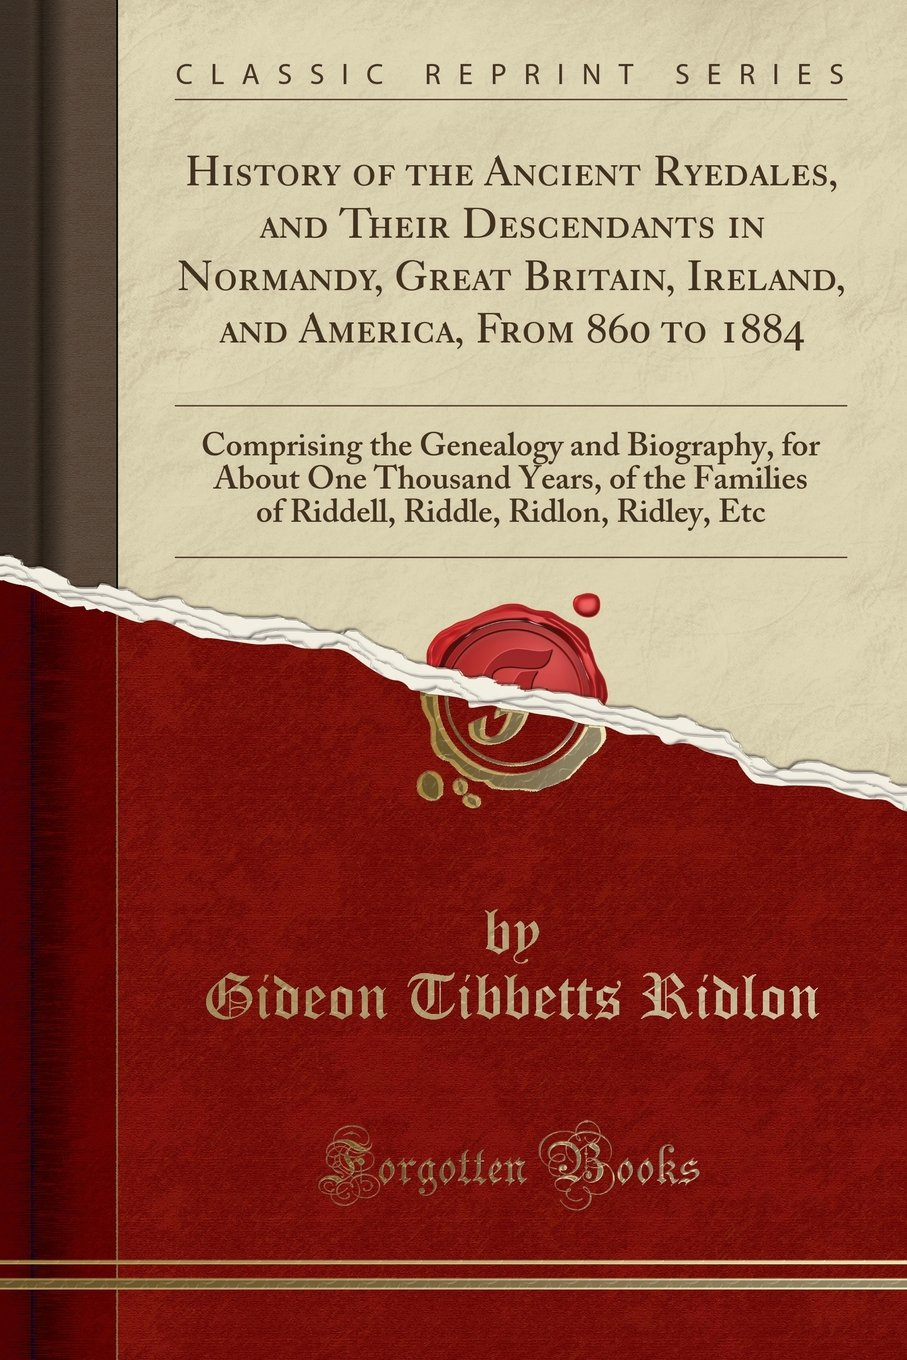 Read Online History of the Ancient Ryedales, and Their Descendants in Normandy, Great Britain, Ireland, and America, From 860 to 1884: Comprising the Genealogy ... of Riddell, Riddle, Ridlon, Ridley, Etc pdf epub